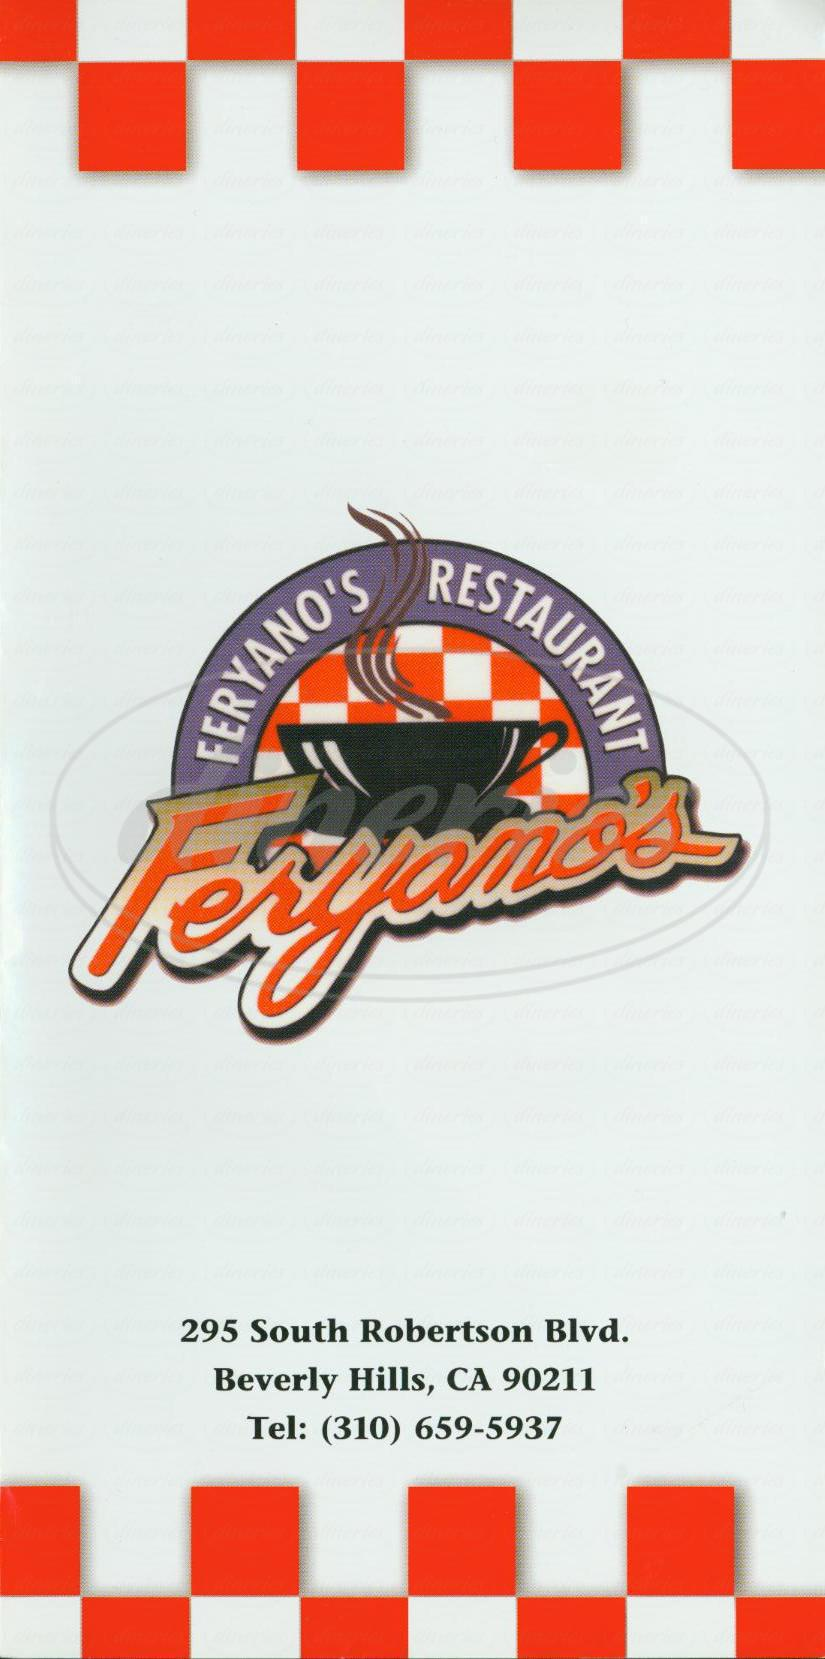 menu for Feryano's Restaurant